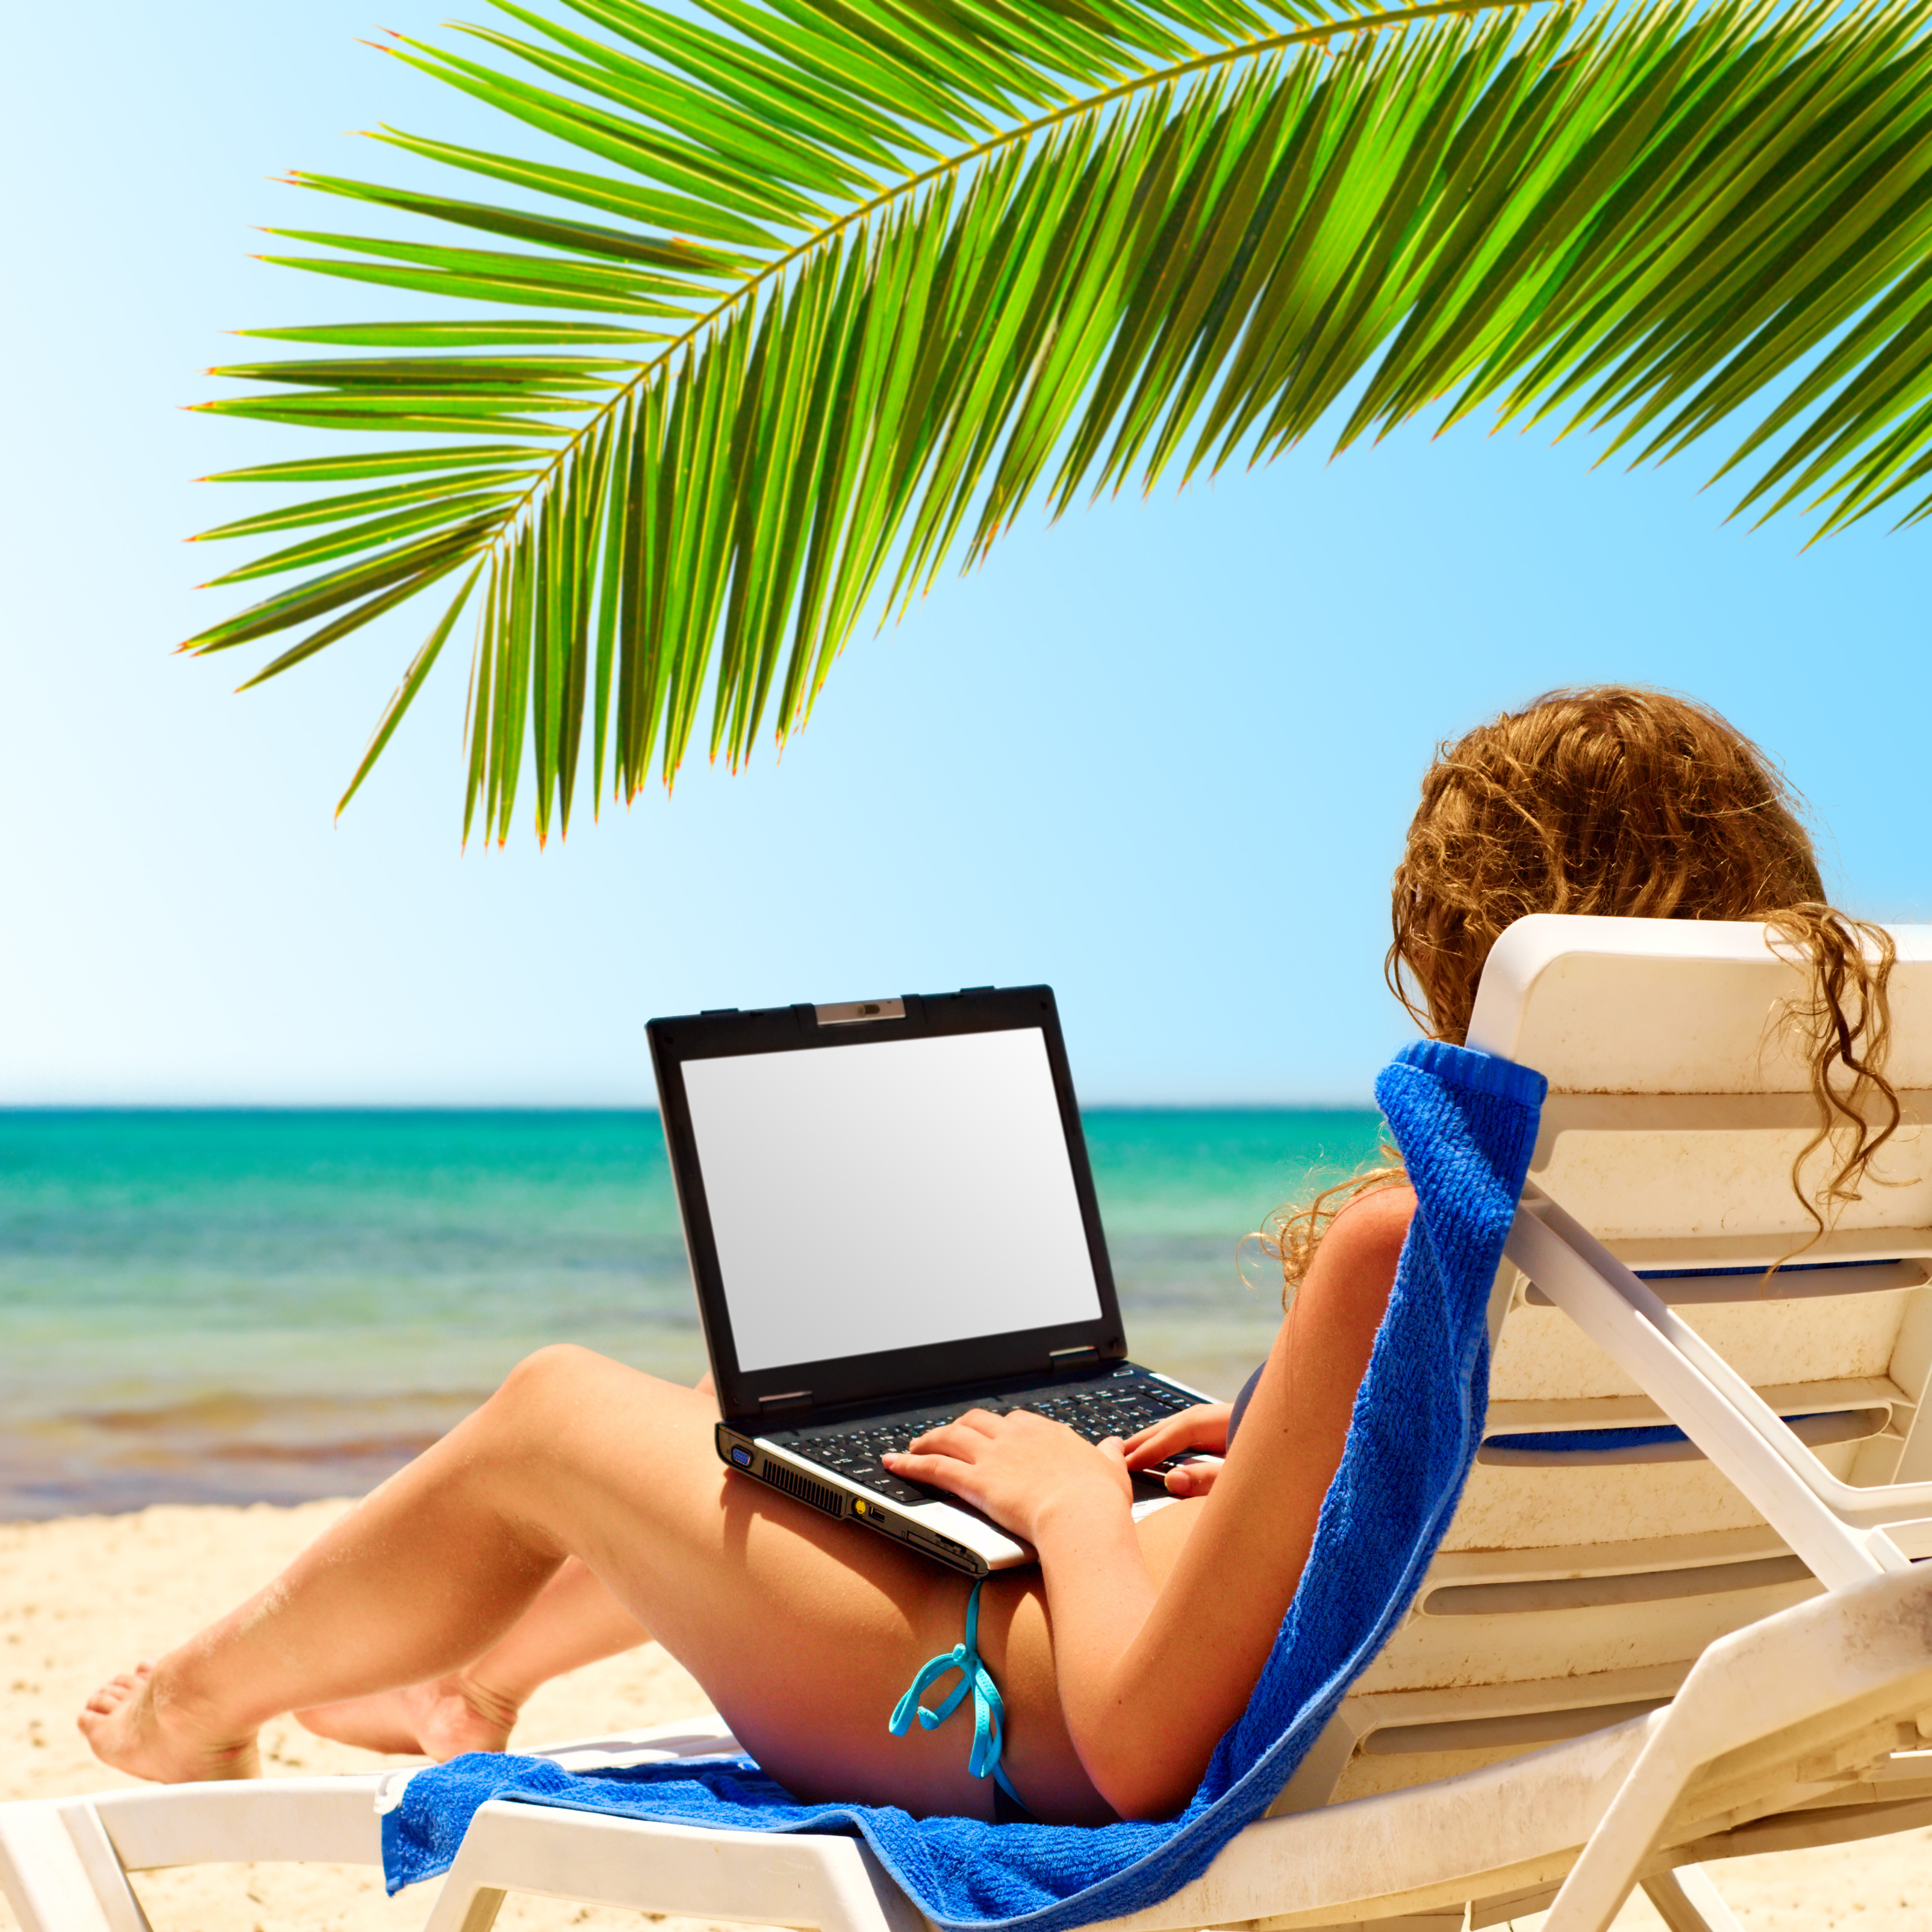 laptop beach, remote working holiday © Sergey Peterman Shutterstock